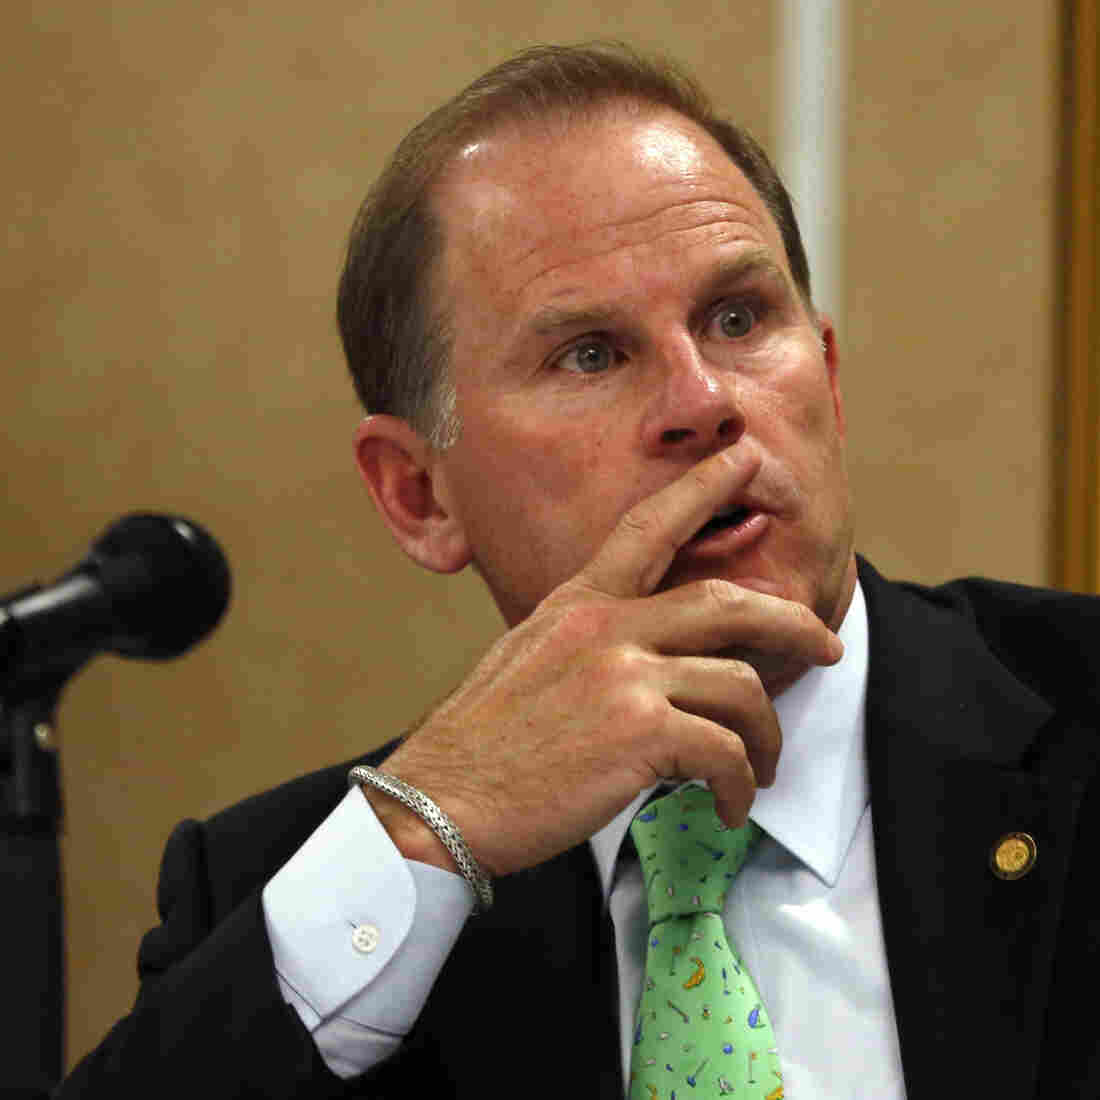 Amid Controversy, University Of Missouri President And Chancellor Step Down